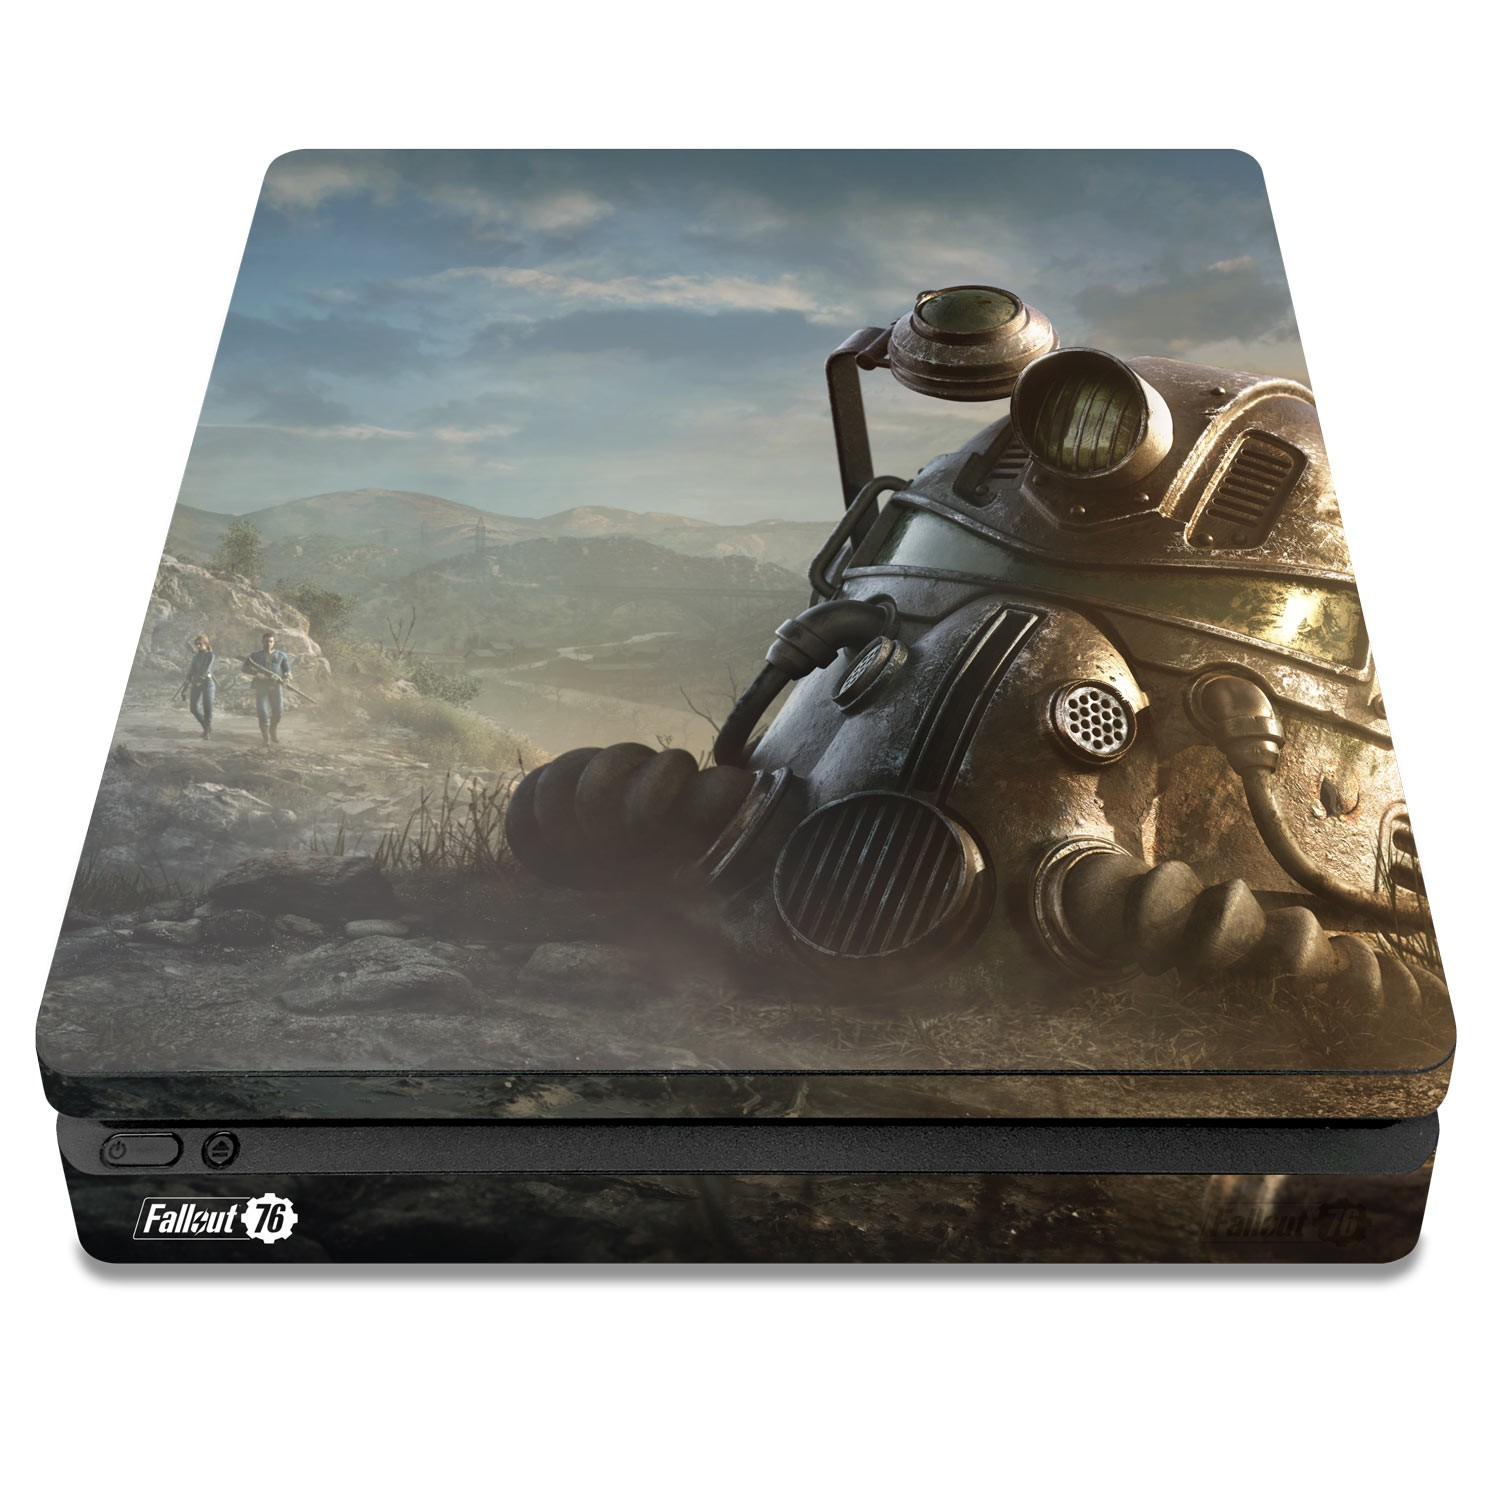 Officially Licensed Console Skin Bundle for PS4 Slim - Fallout 76 - Power Armor Helmet